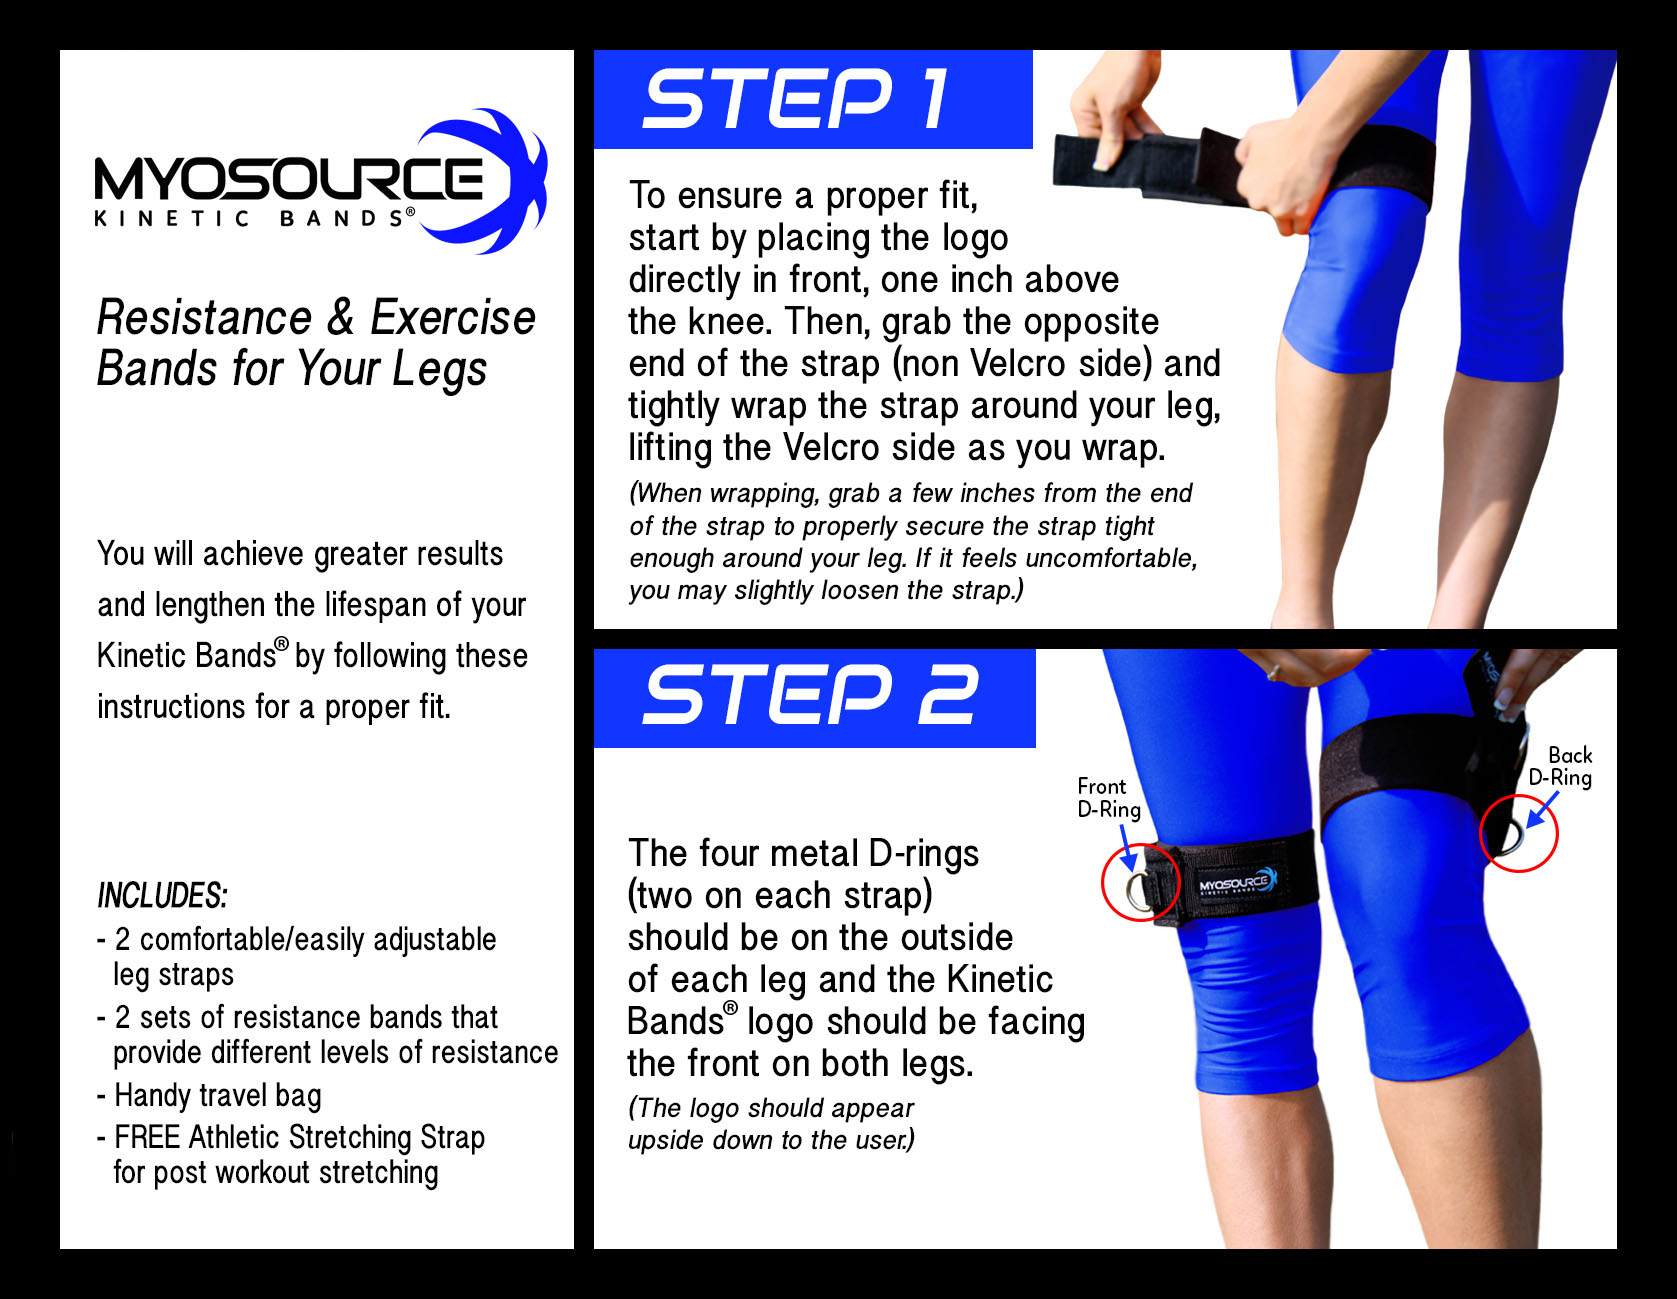 How To Put On The Kinetic Bands - Steps 1 and 2